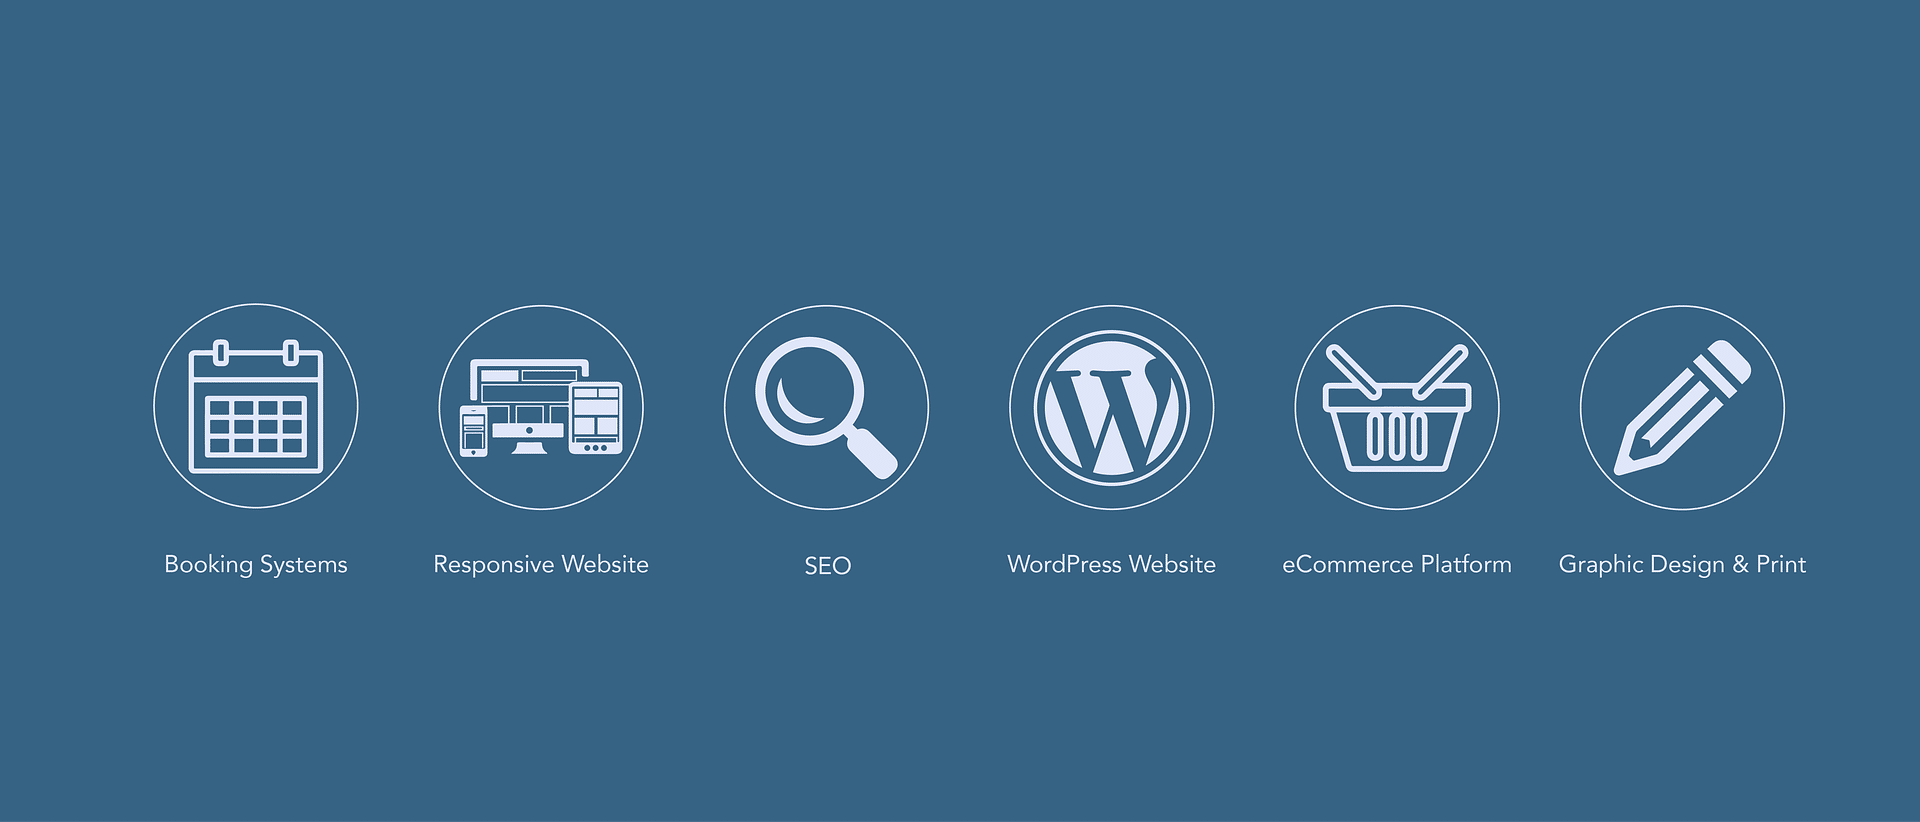 WordPress Management Services UK can WordPress be used for a business website